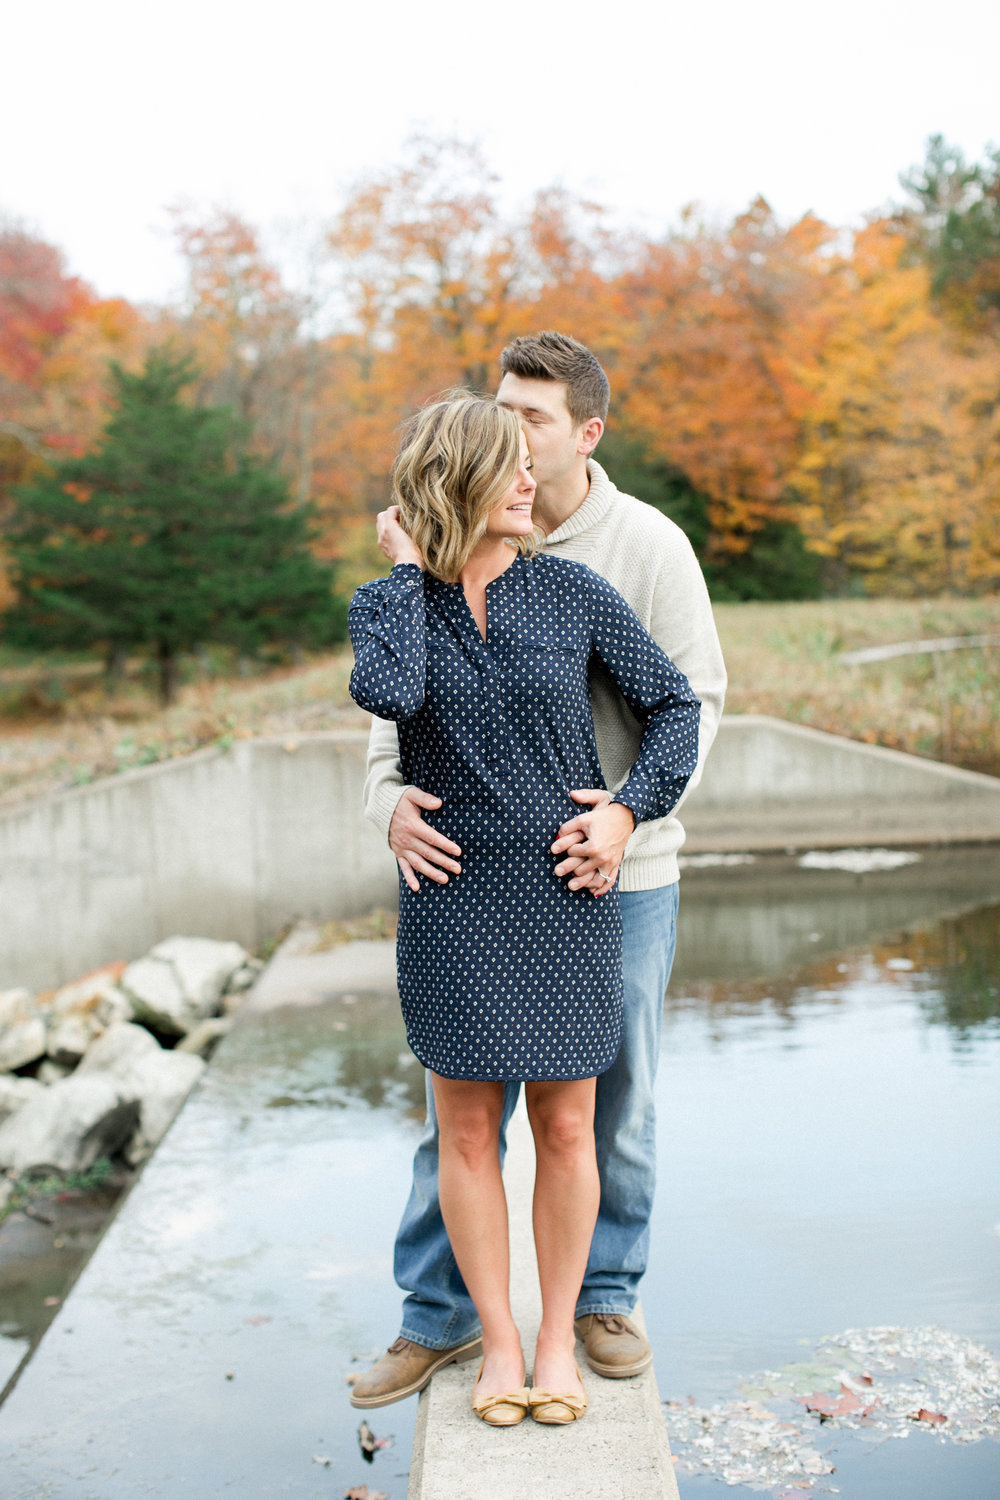 M+Q_Engagement (83 of 159).jpg